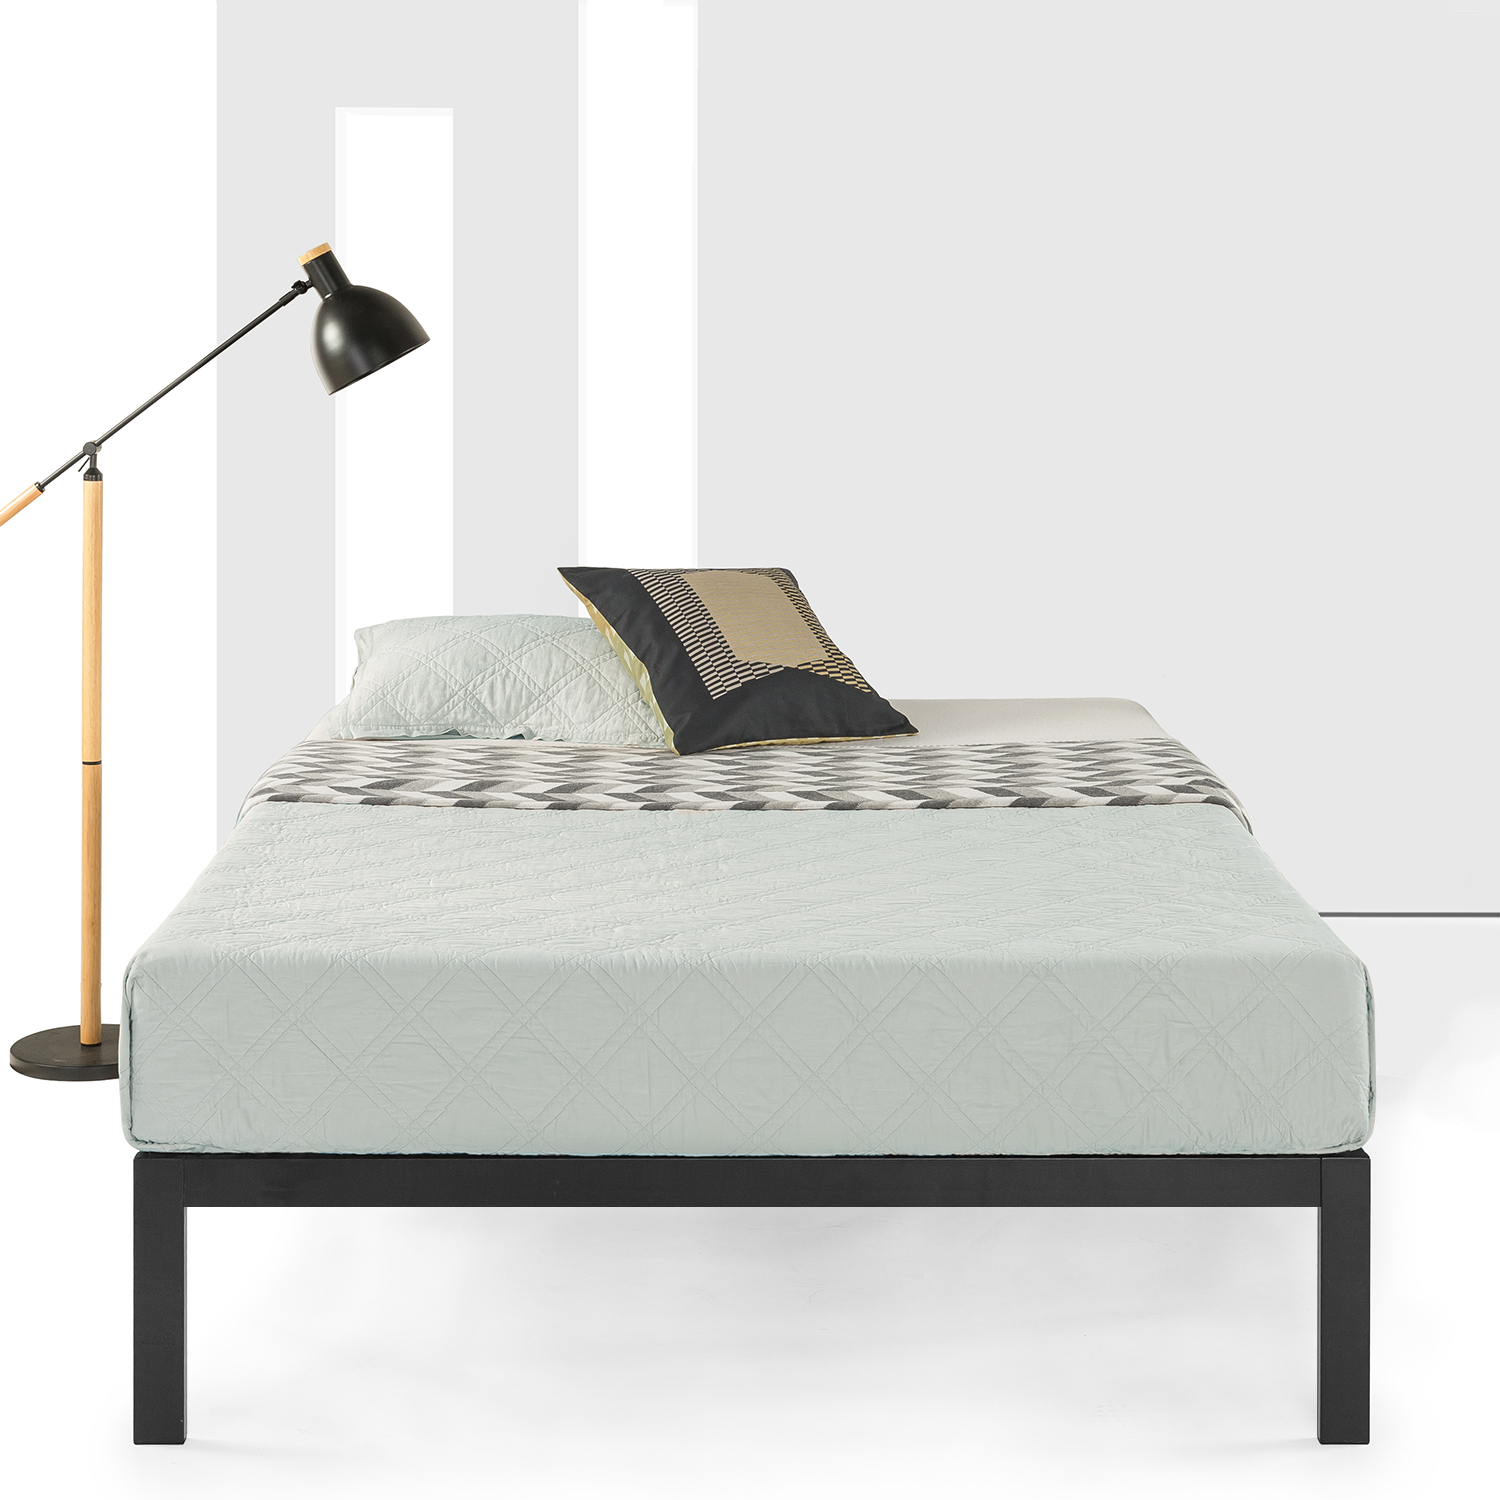 Best Price Mattress 14 Inch Heavy Duty Platform Metal Bed with Wooden Slat Support